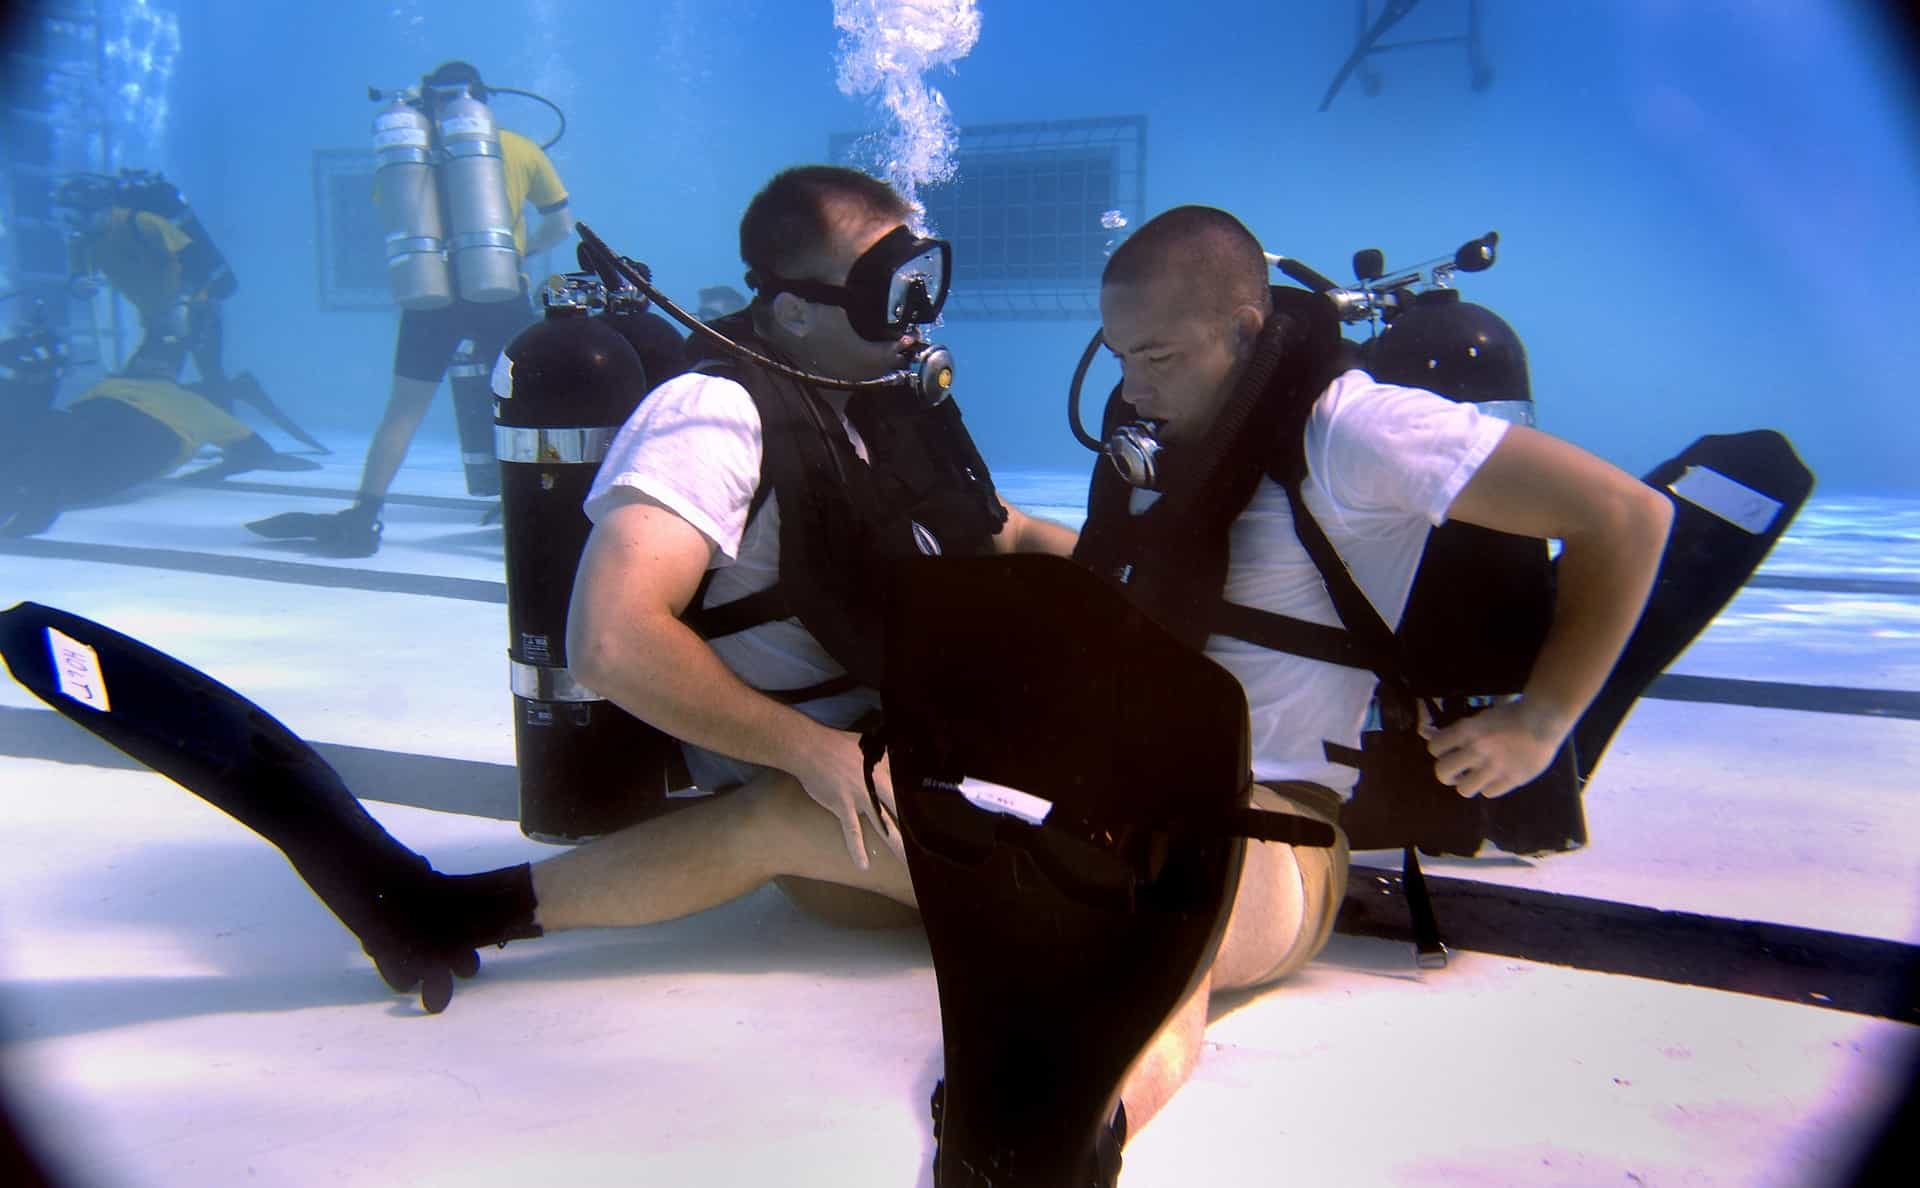 Training in a pool to get certified as a diver